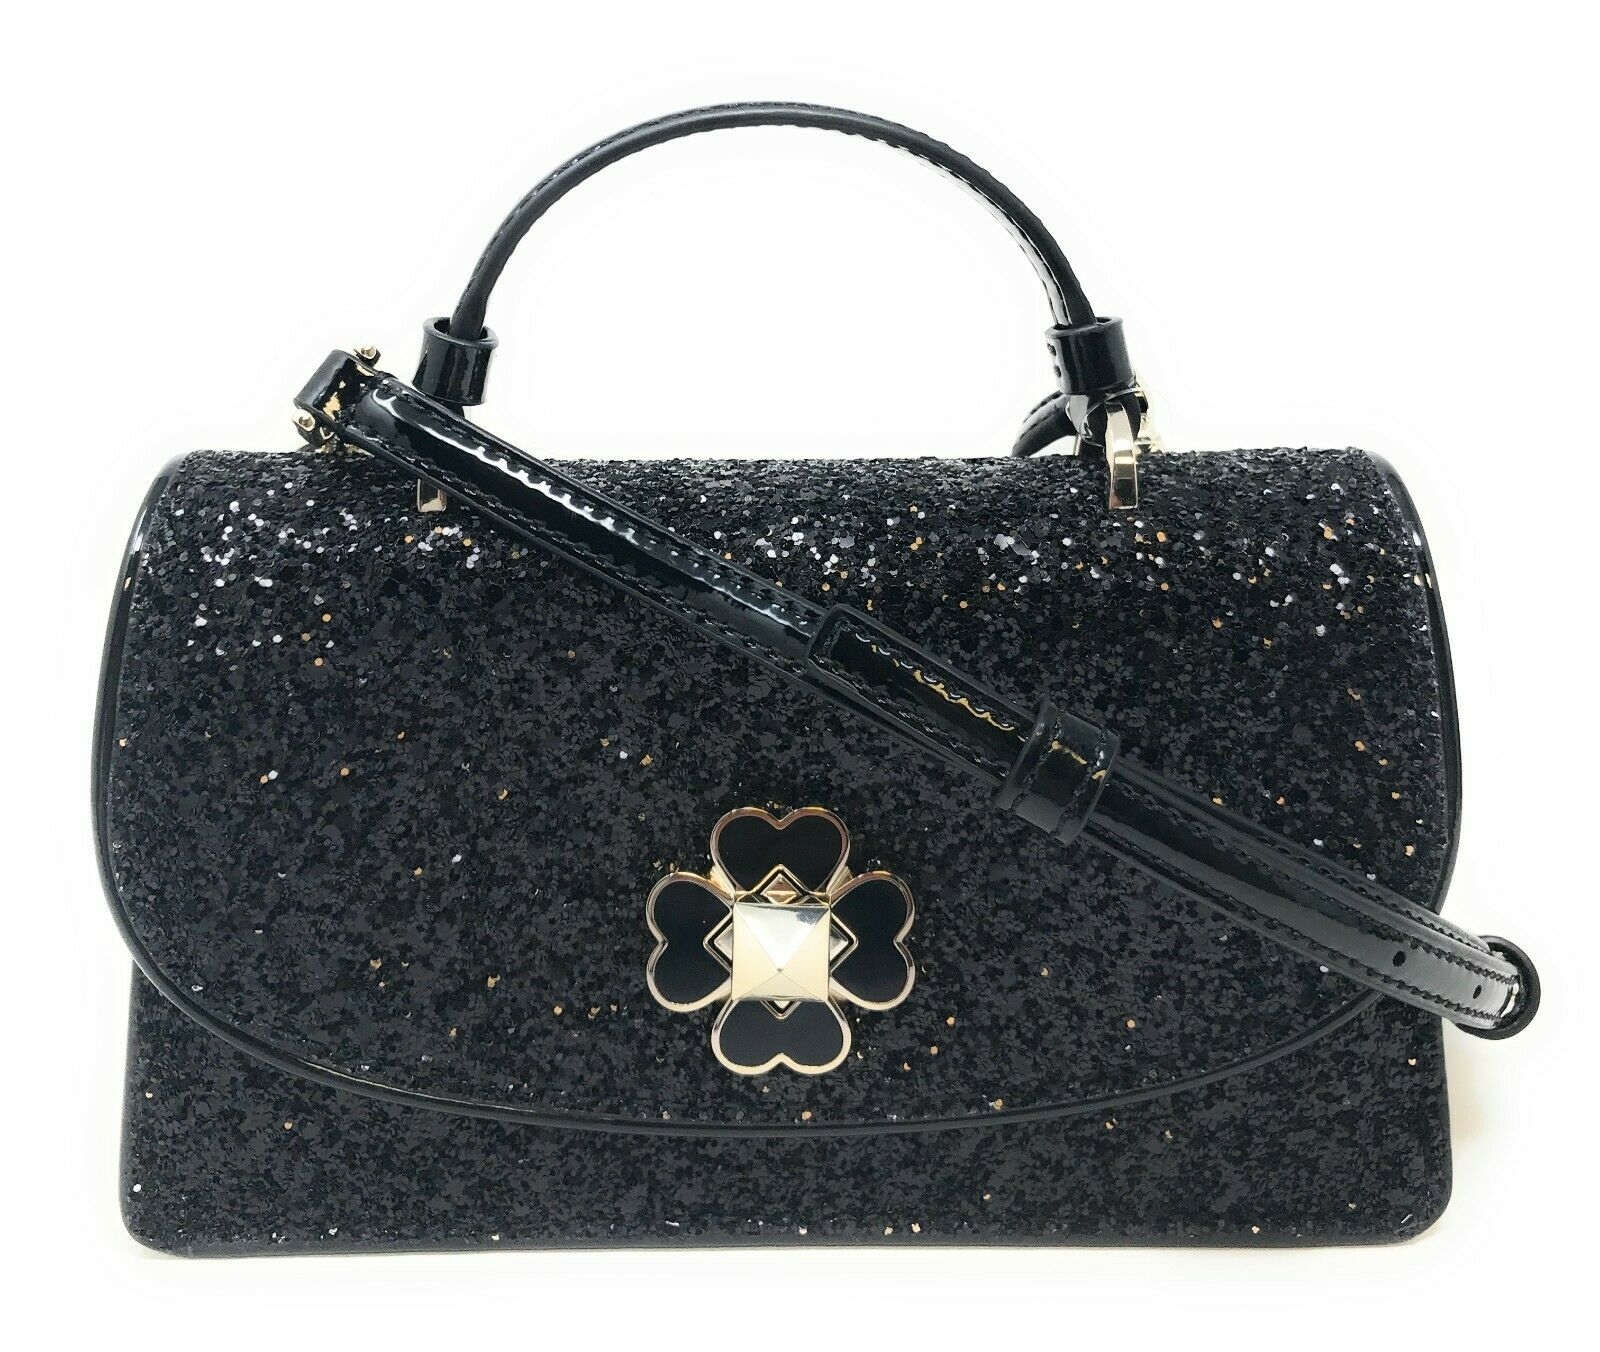 Kate Spade Adette Glitter Mini Top Handle Crossbody Bag Mini Satchel WKRU6366